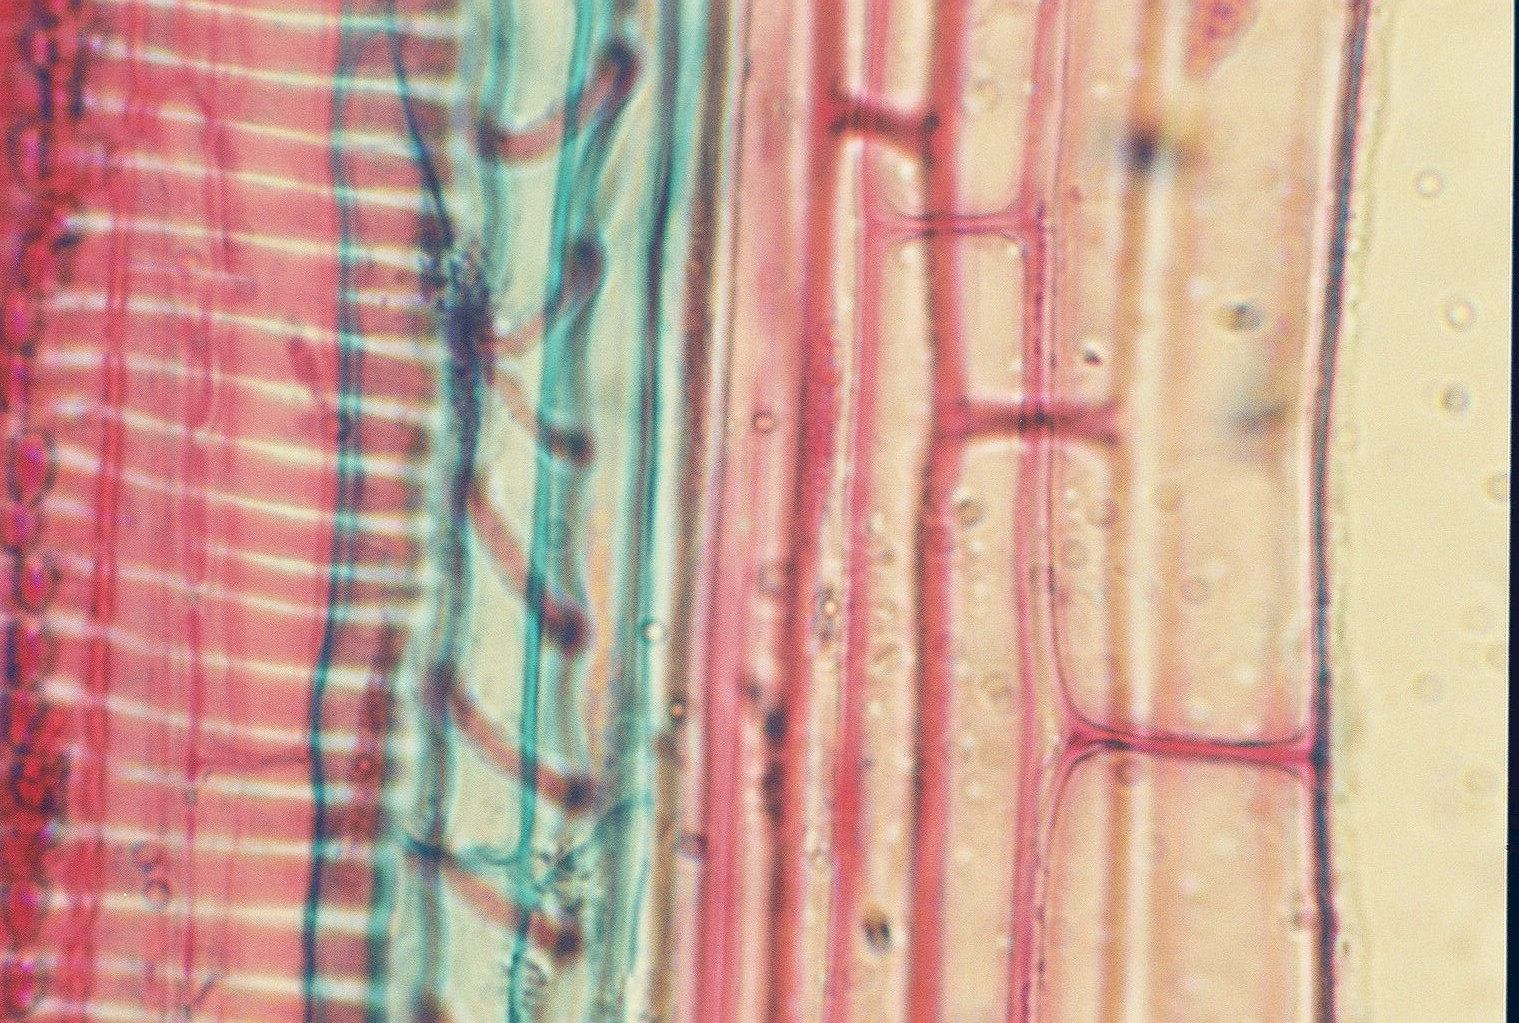 Xylem Cell Microscope Botany Pictures